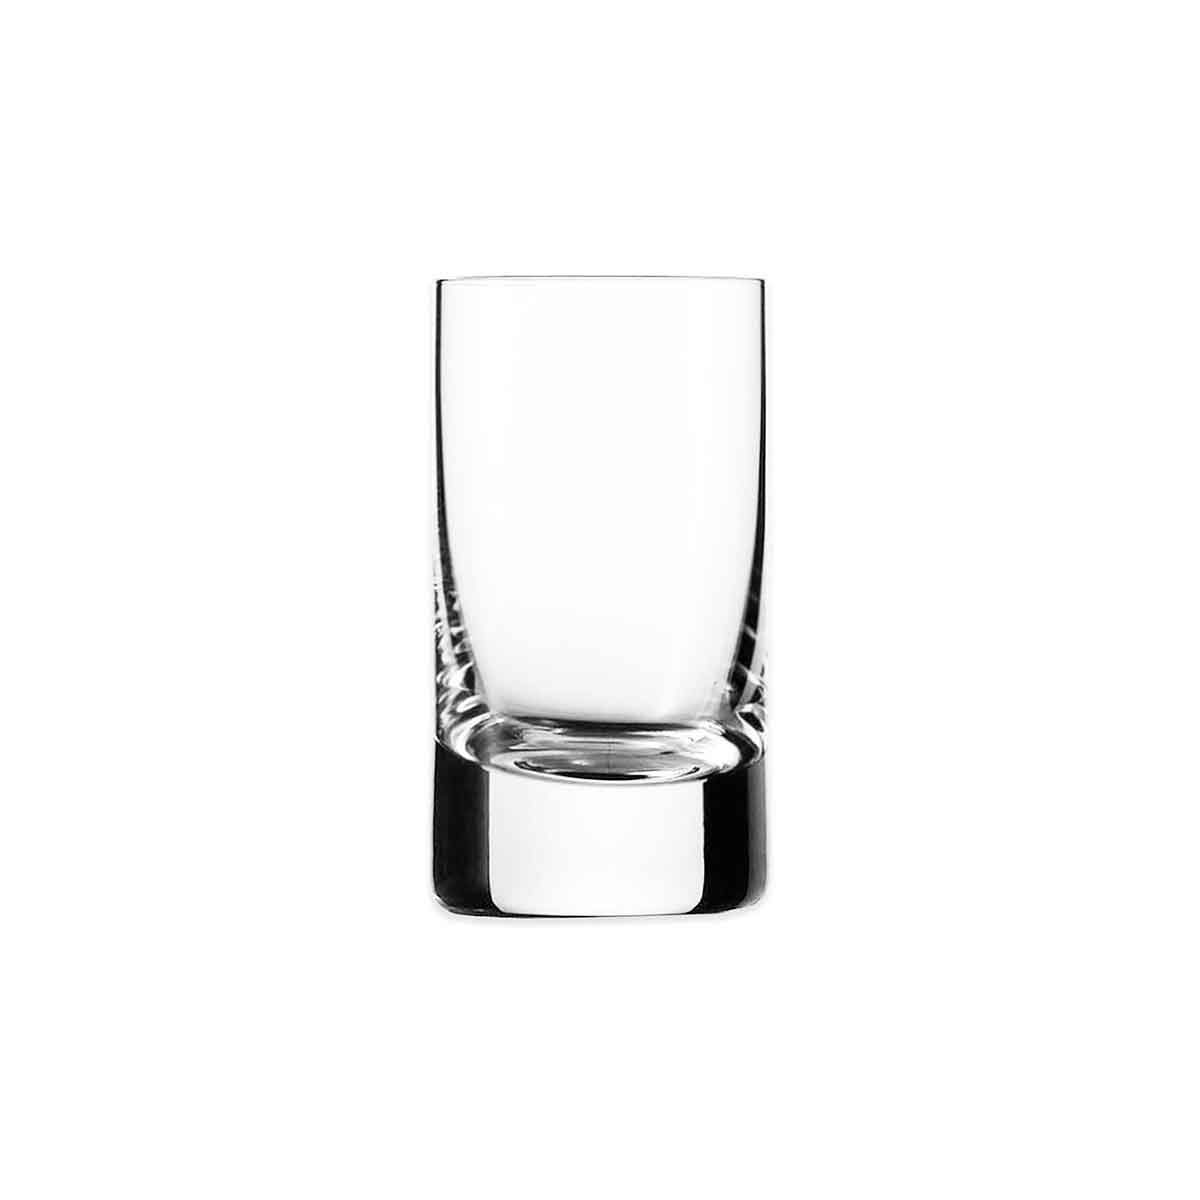 Schott Zwiesel Tritan Crystal, Paris Crystal Shot Glass, Single